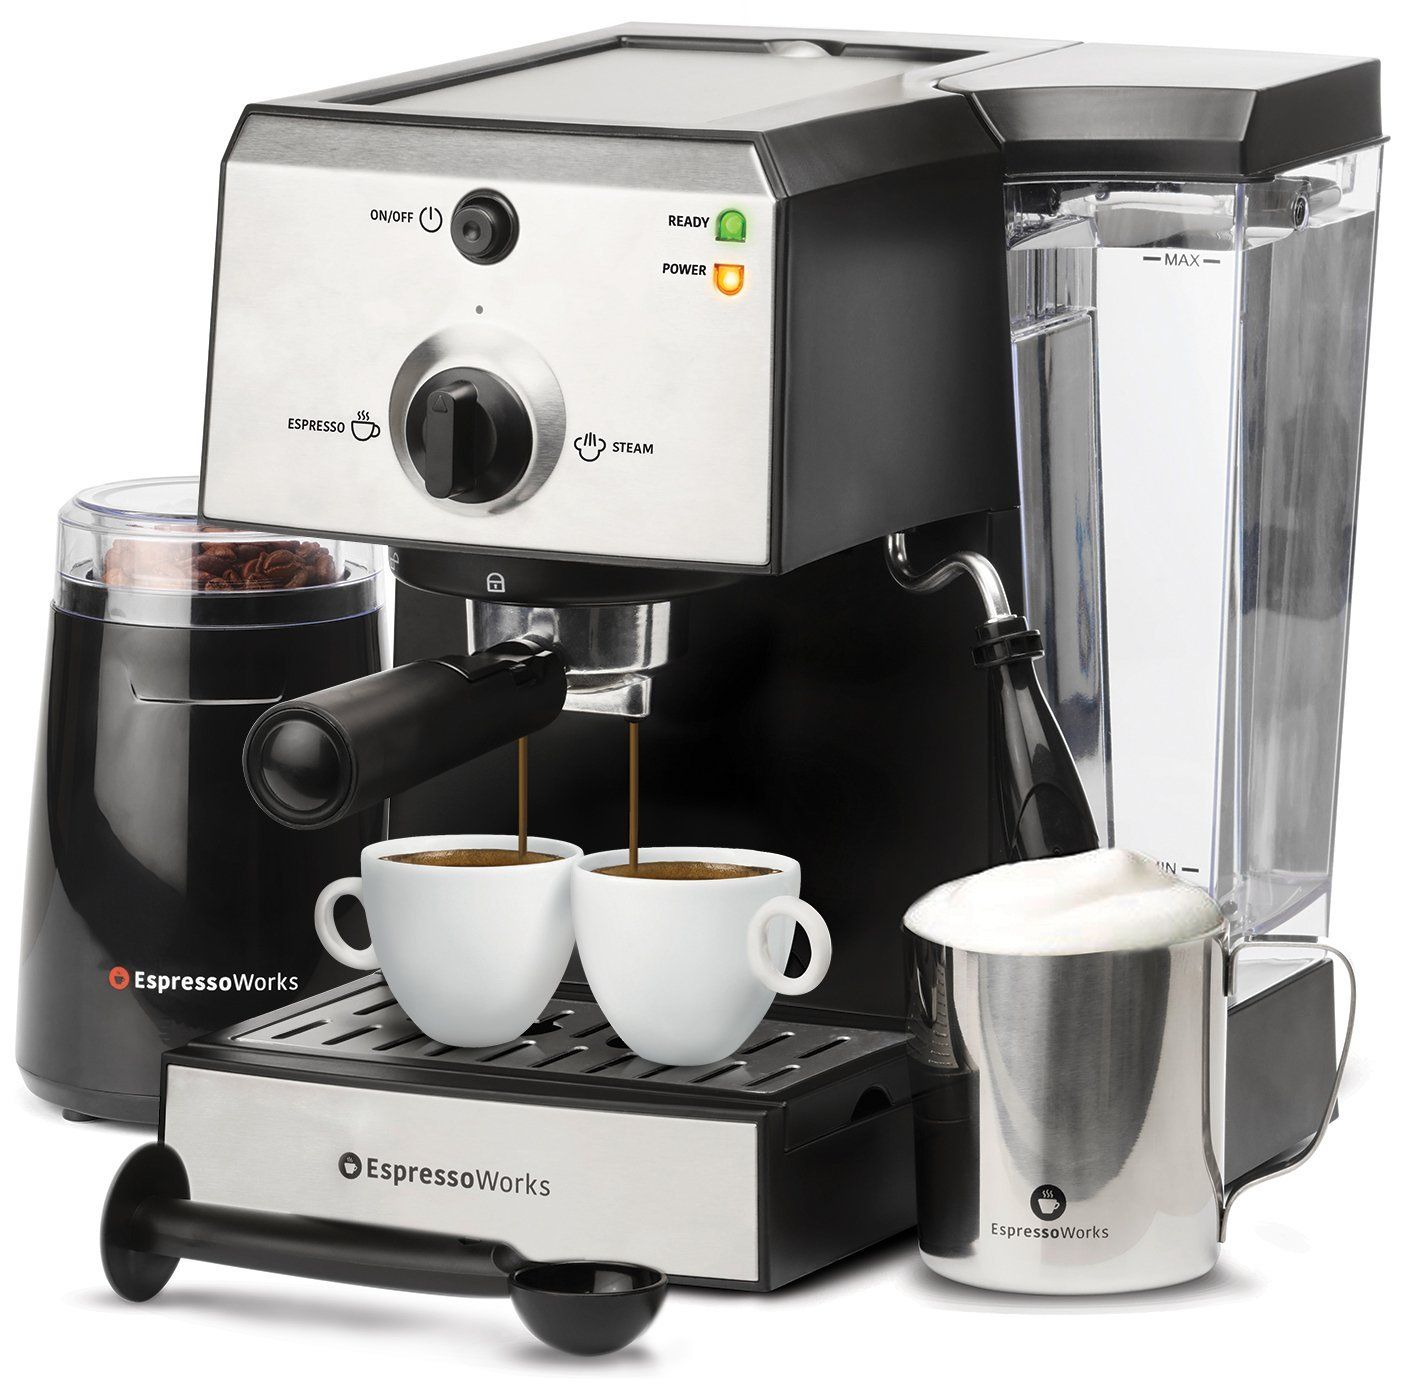 7 Pc AllInOne Espresso & Cappuccino Maker Machine